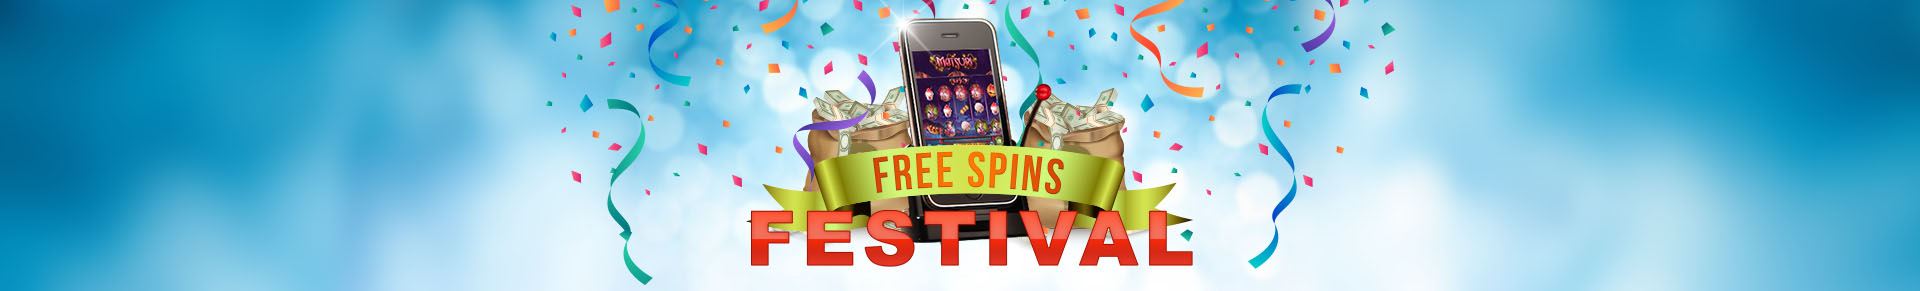 Free Spins Festival